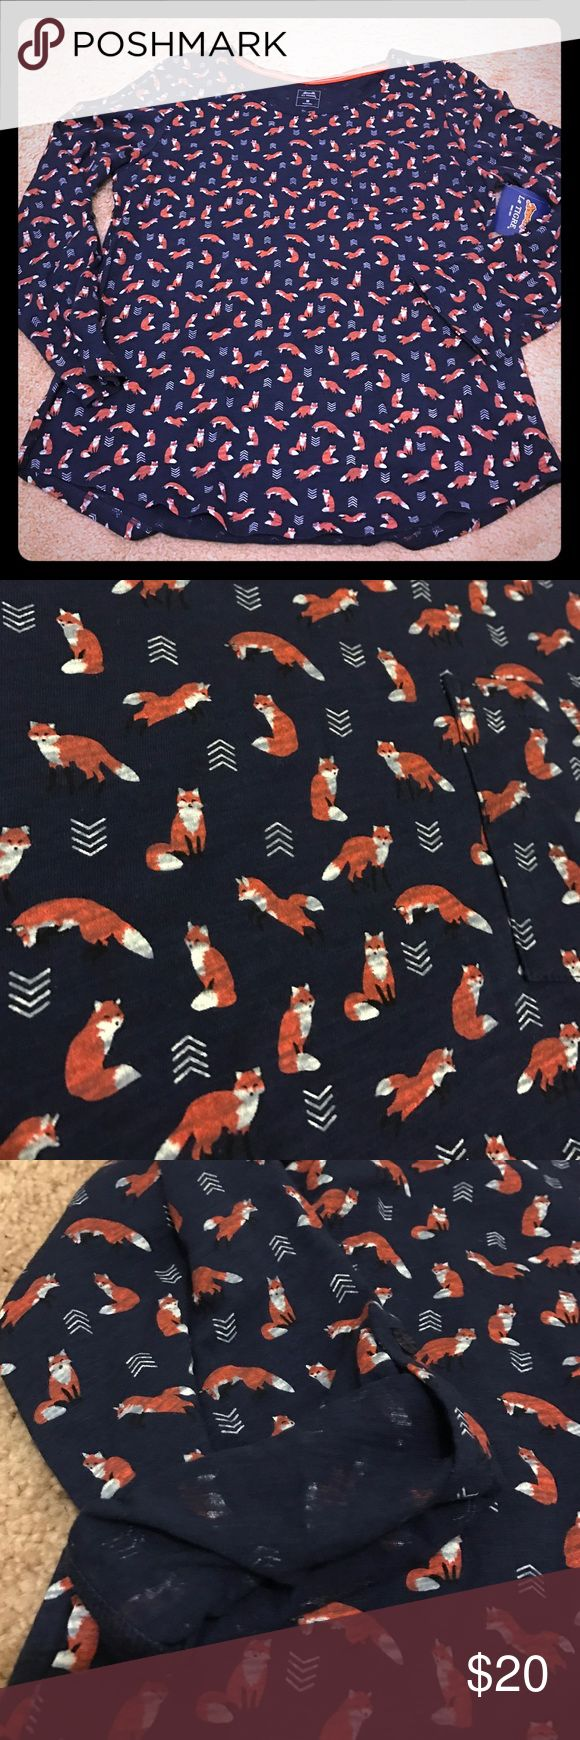 """Adorable long sleeve fox shirt in navy Adorable! Has a pocket and option to roll and button sleeves to 3/4 length. Chest measures 19"""" across, length measures 23"""" at sides and 24.5"""" in the middle. le tigre Tops Tees - Long Sleeve"""